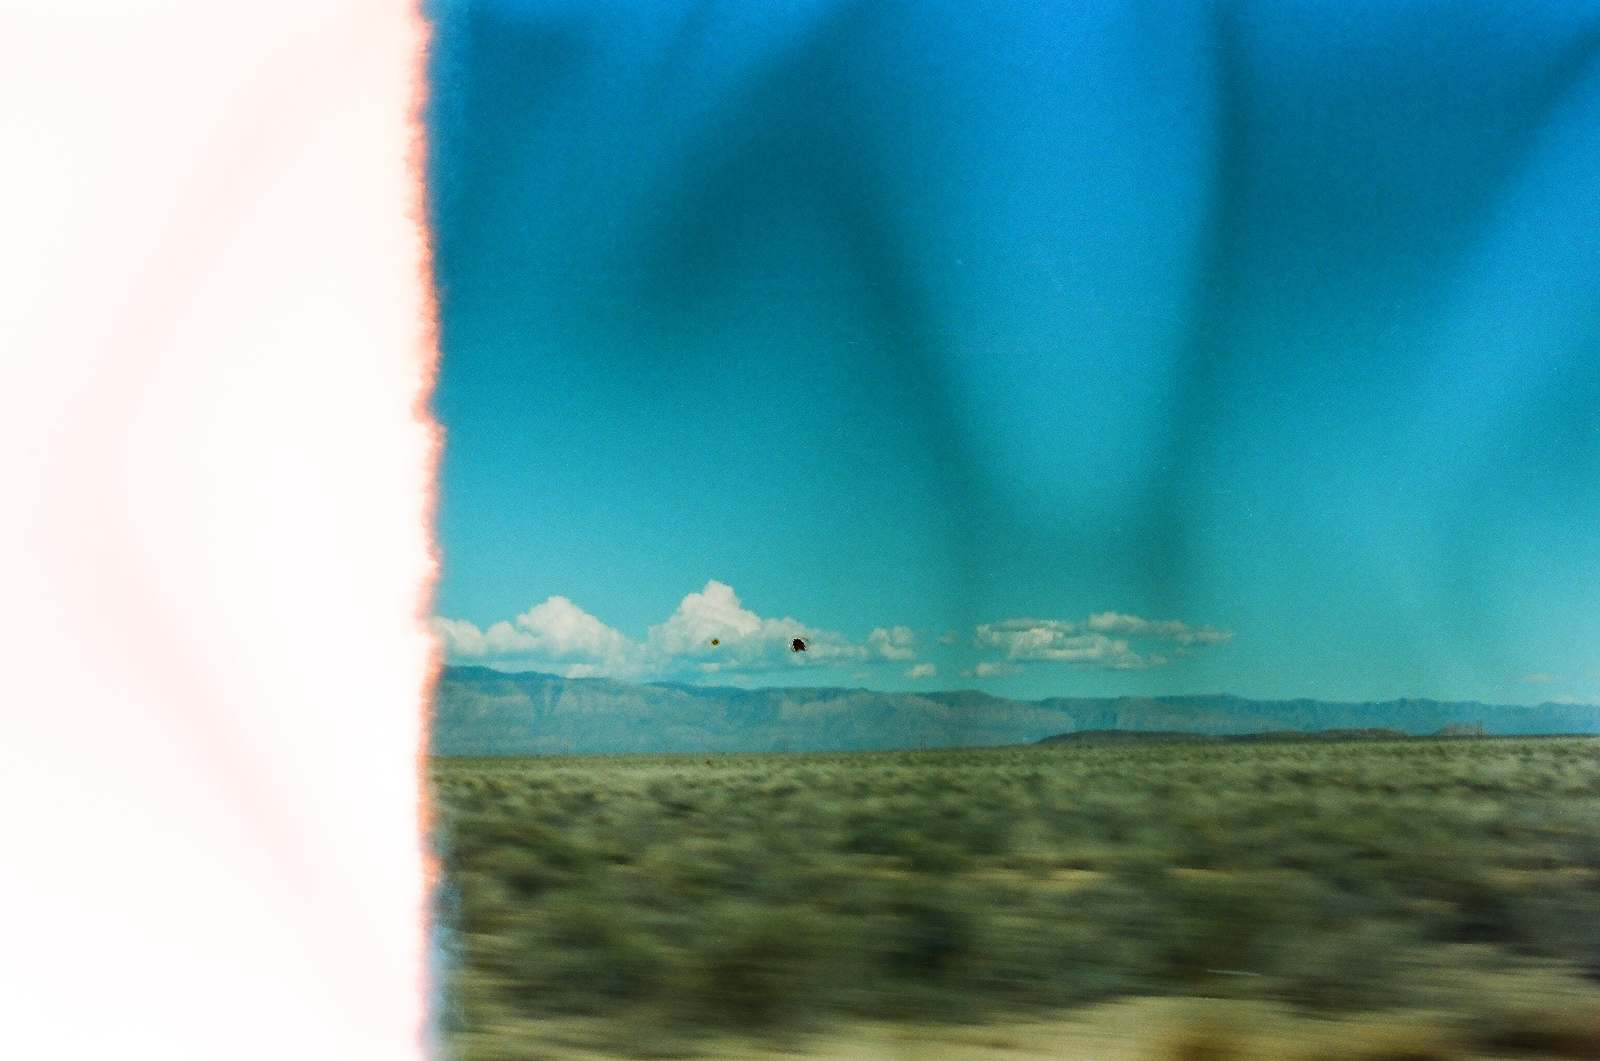 untitled, new mexico, 2015